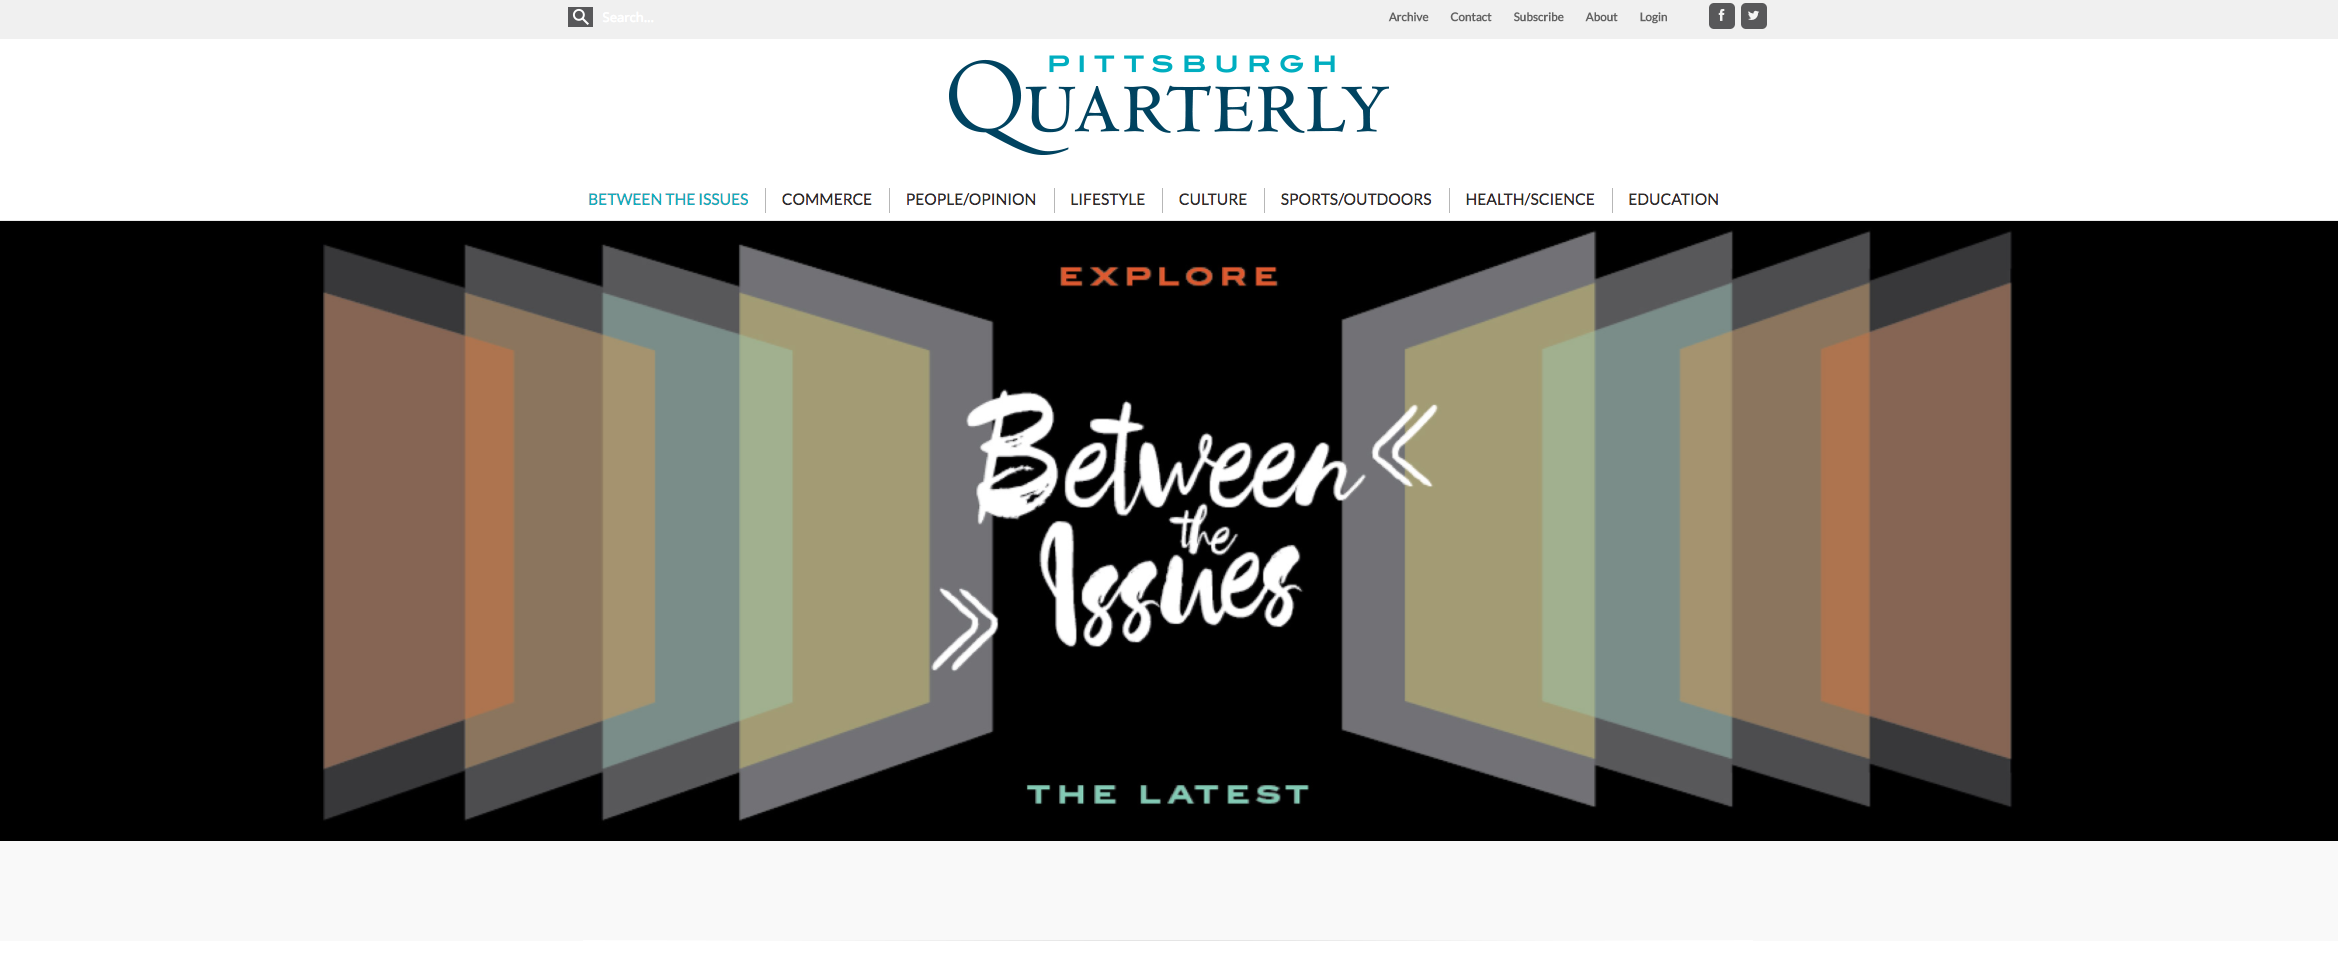 Pittsburgh Quarterly: Website Development Project